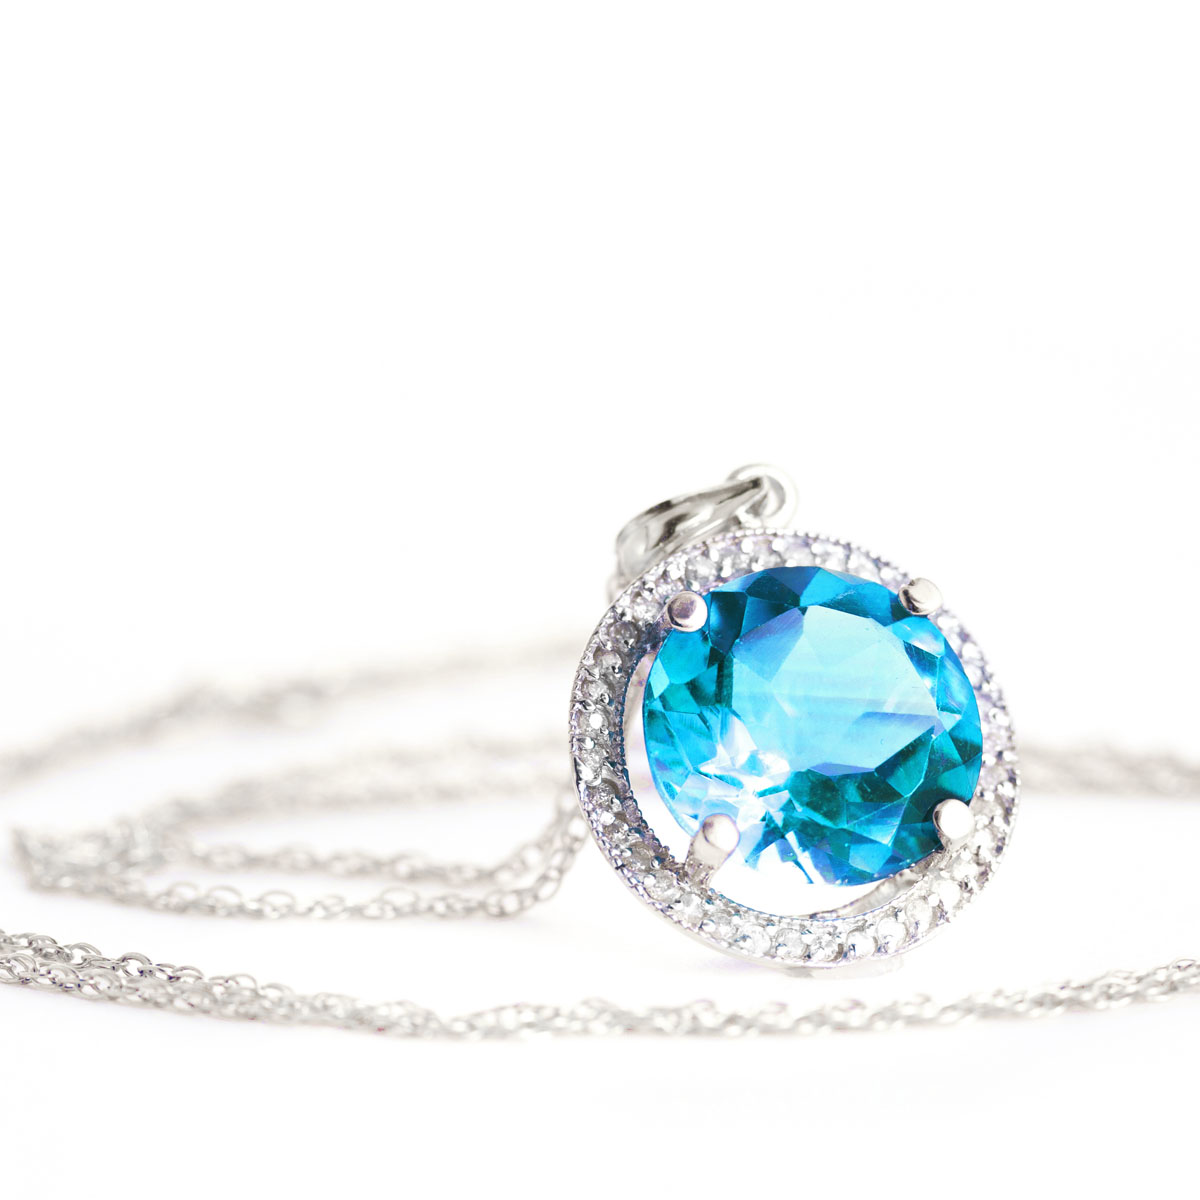 Blue Topaz Halo Pendant Necklace 8 ctw in 9ct White Gold